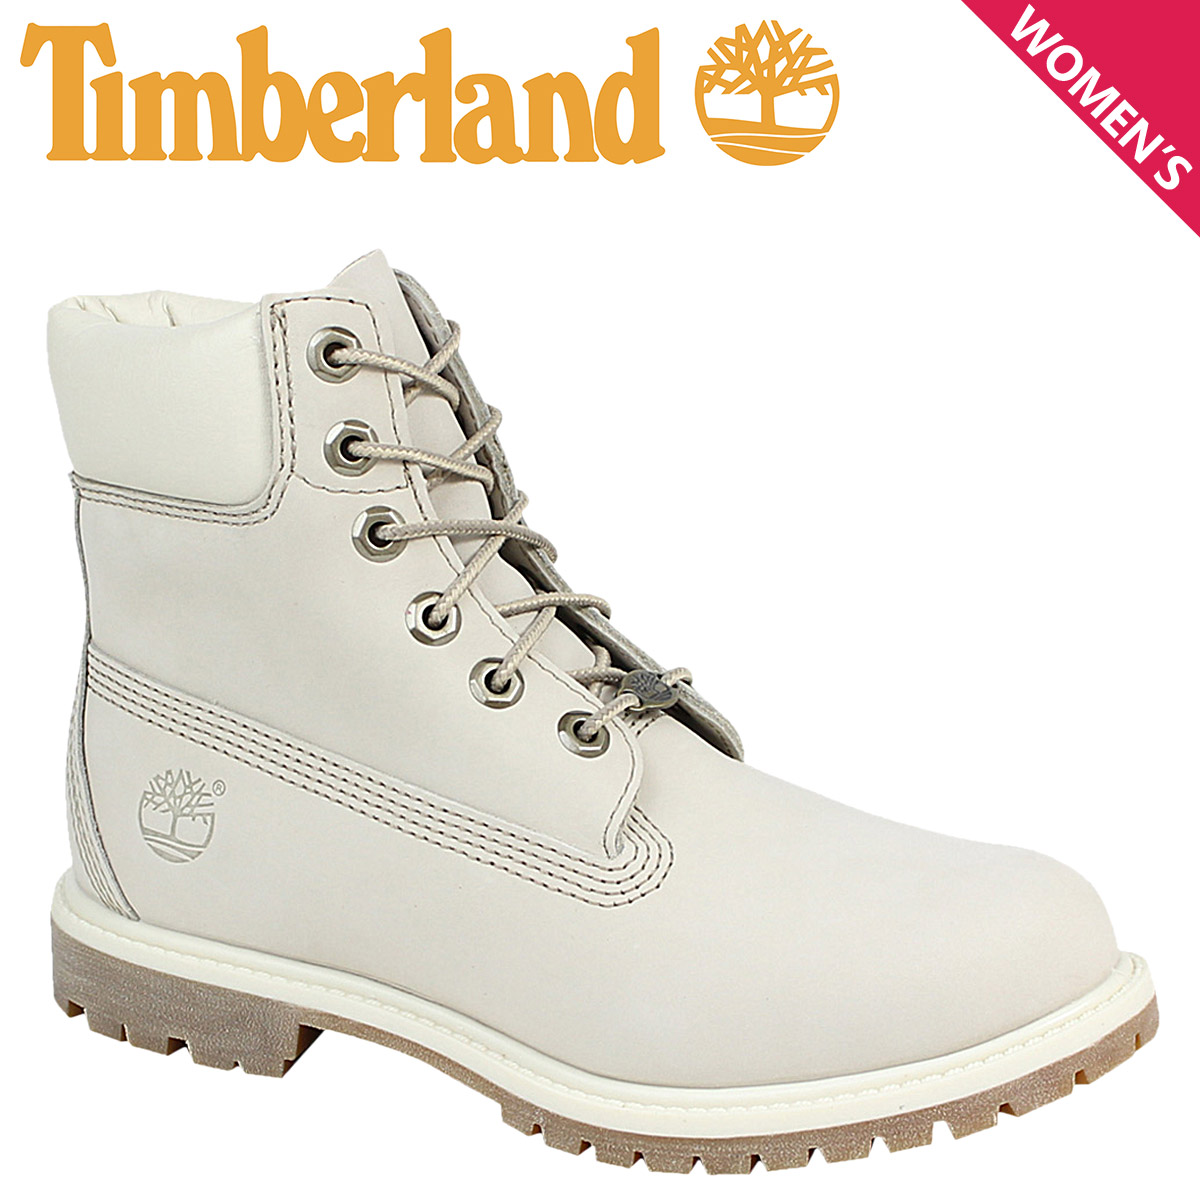 White172 6 623w Waterproof Wise Premium Womens Inch 6inchi Inches Waterproofing Timberland Boots Lady's 23 6gmfyIYb7v